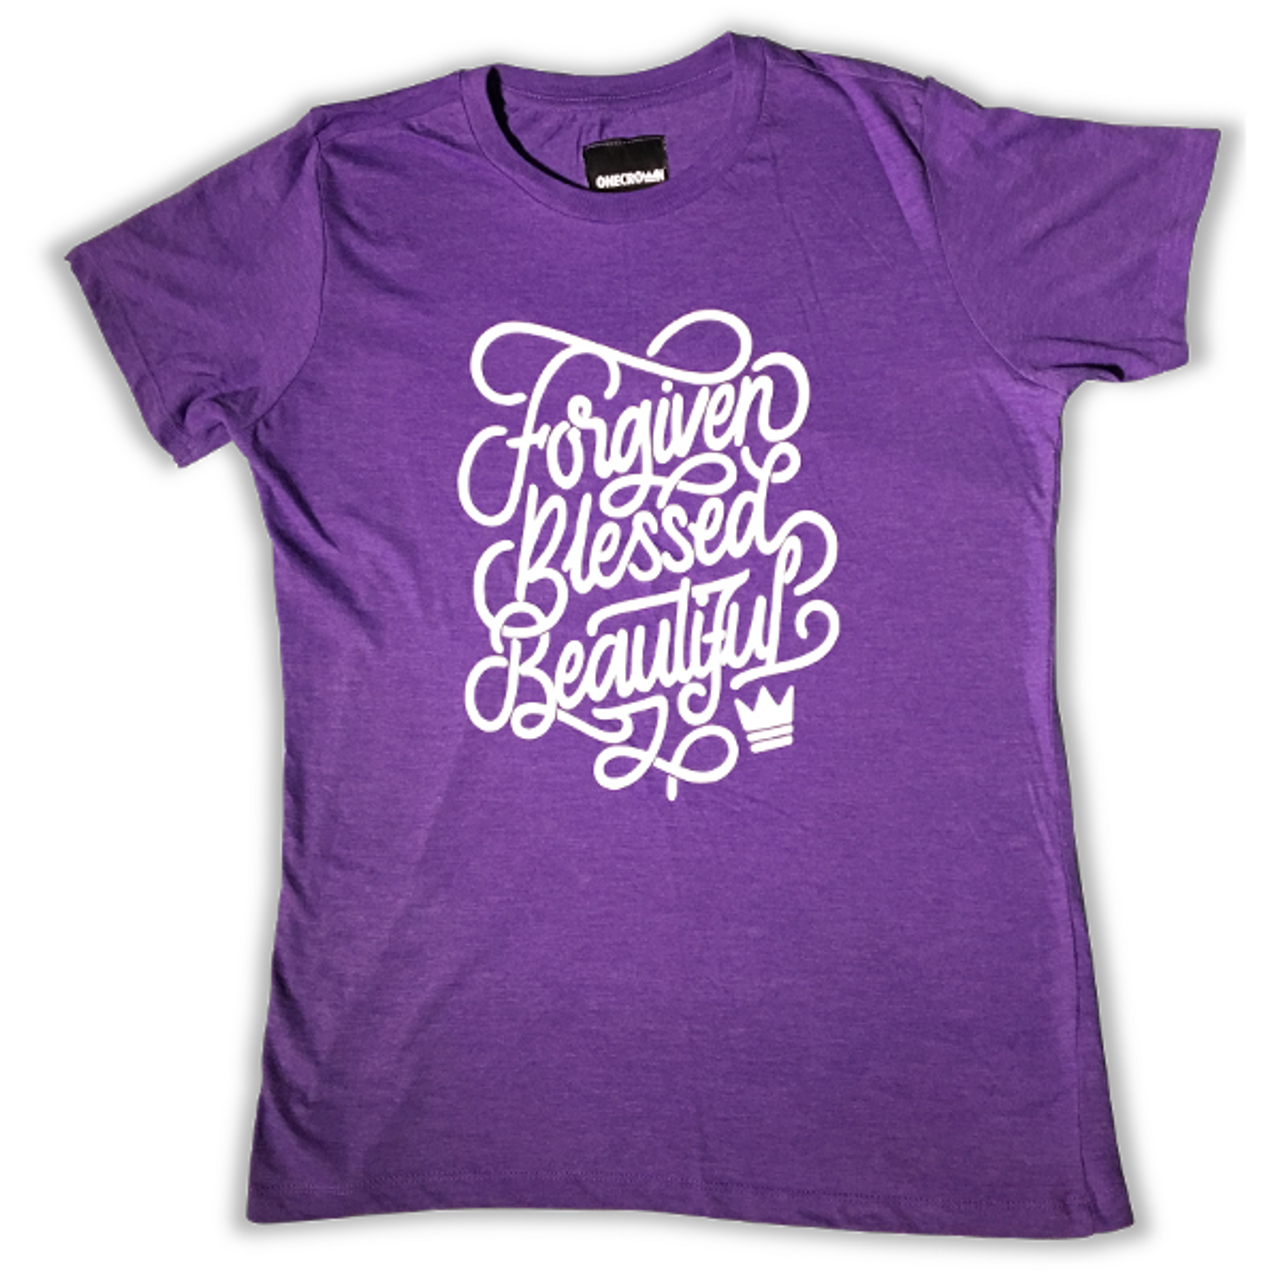 Forgiven Blessed Beautiful - Purple Tee